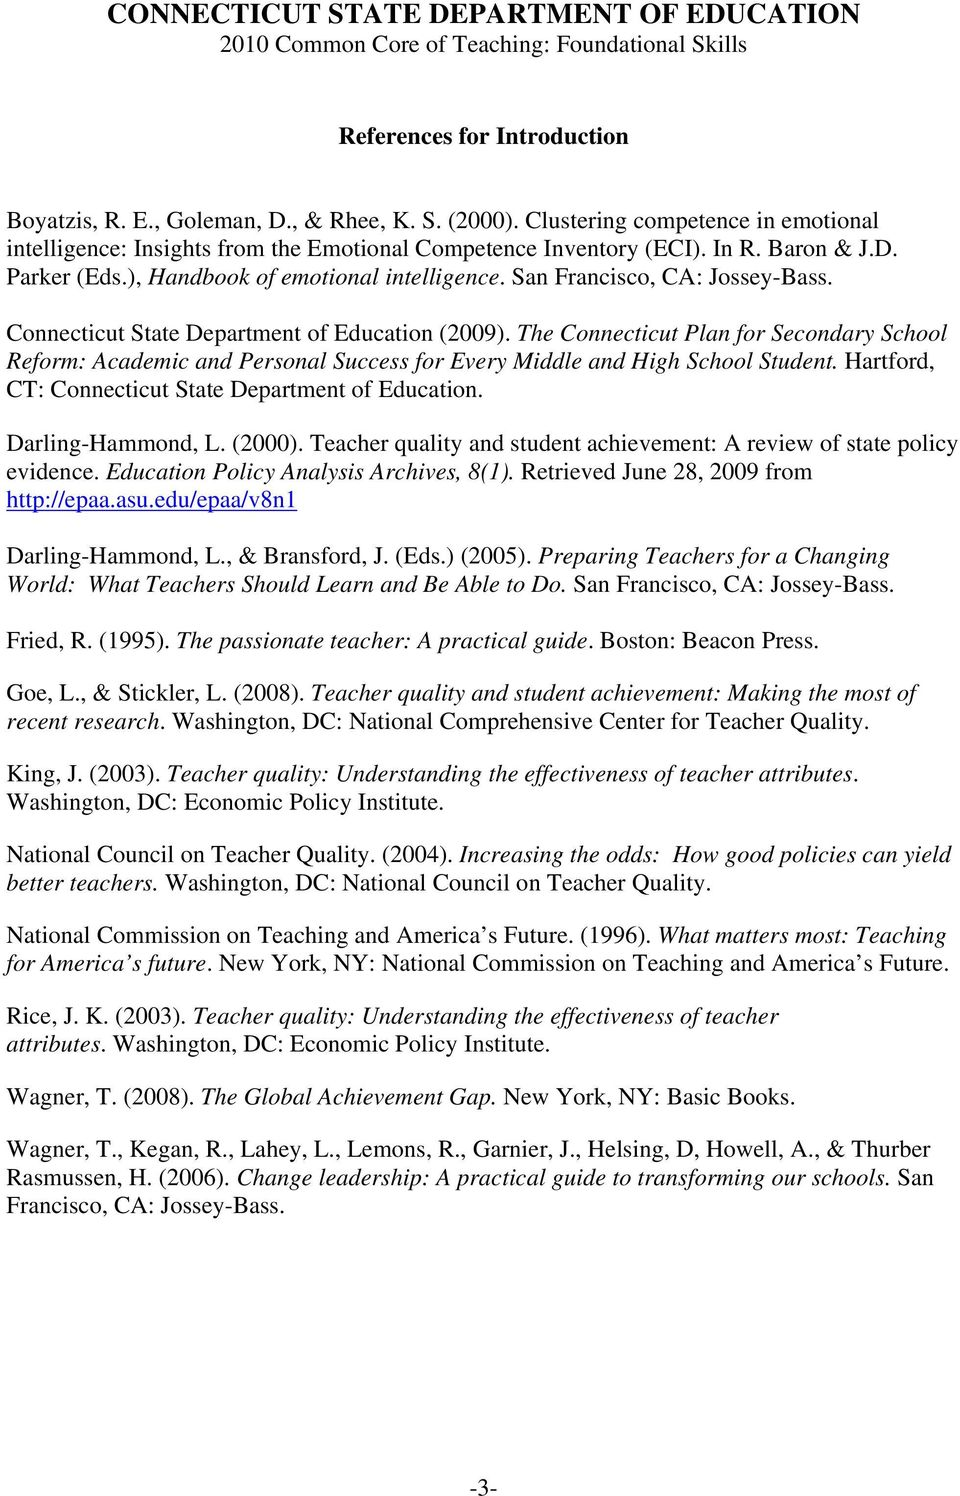 The Connecticut Plan for Secondary School Reform: Academic and Personal Success for Every Middle and High School Student. Hartford, CT: Connecticut State Department of Education. Darling-Hammond, L.